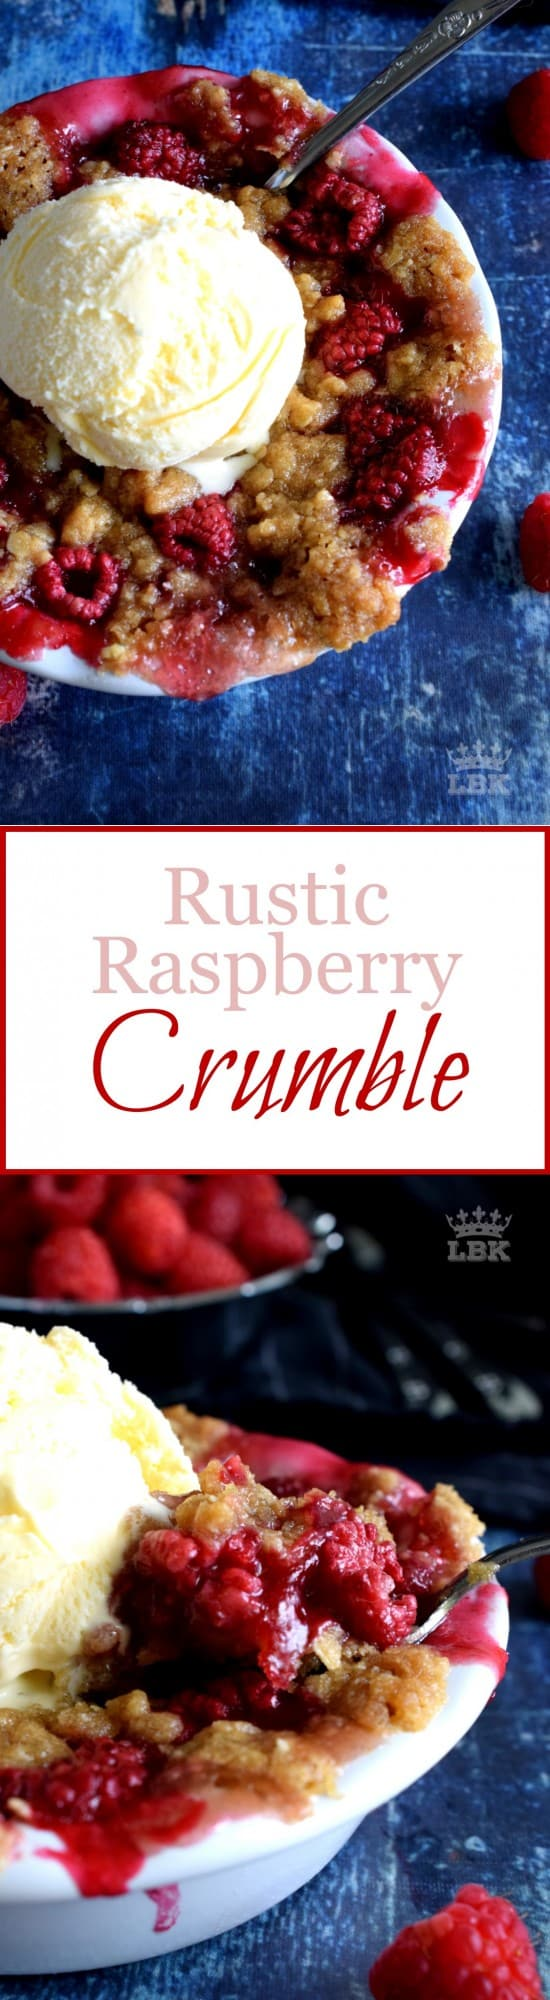 Rustic Raspberry Crumble